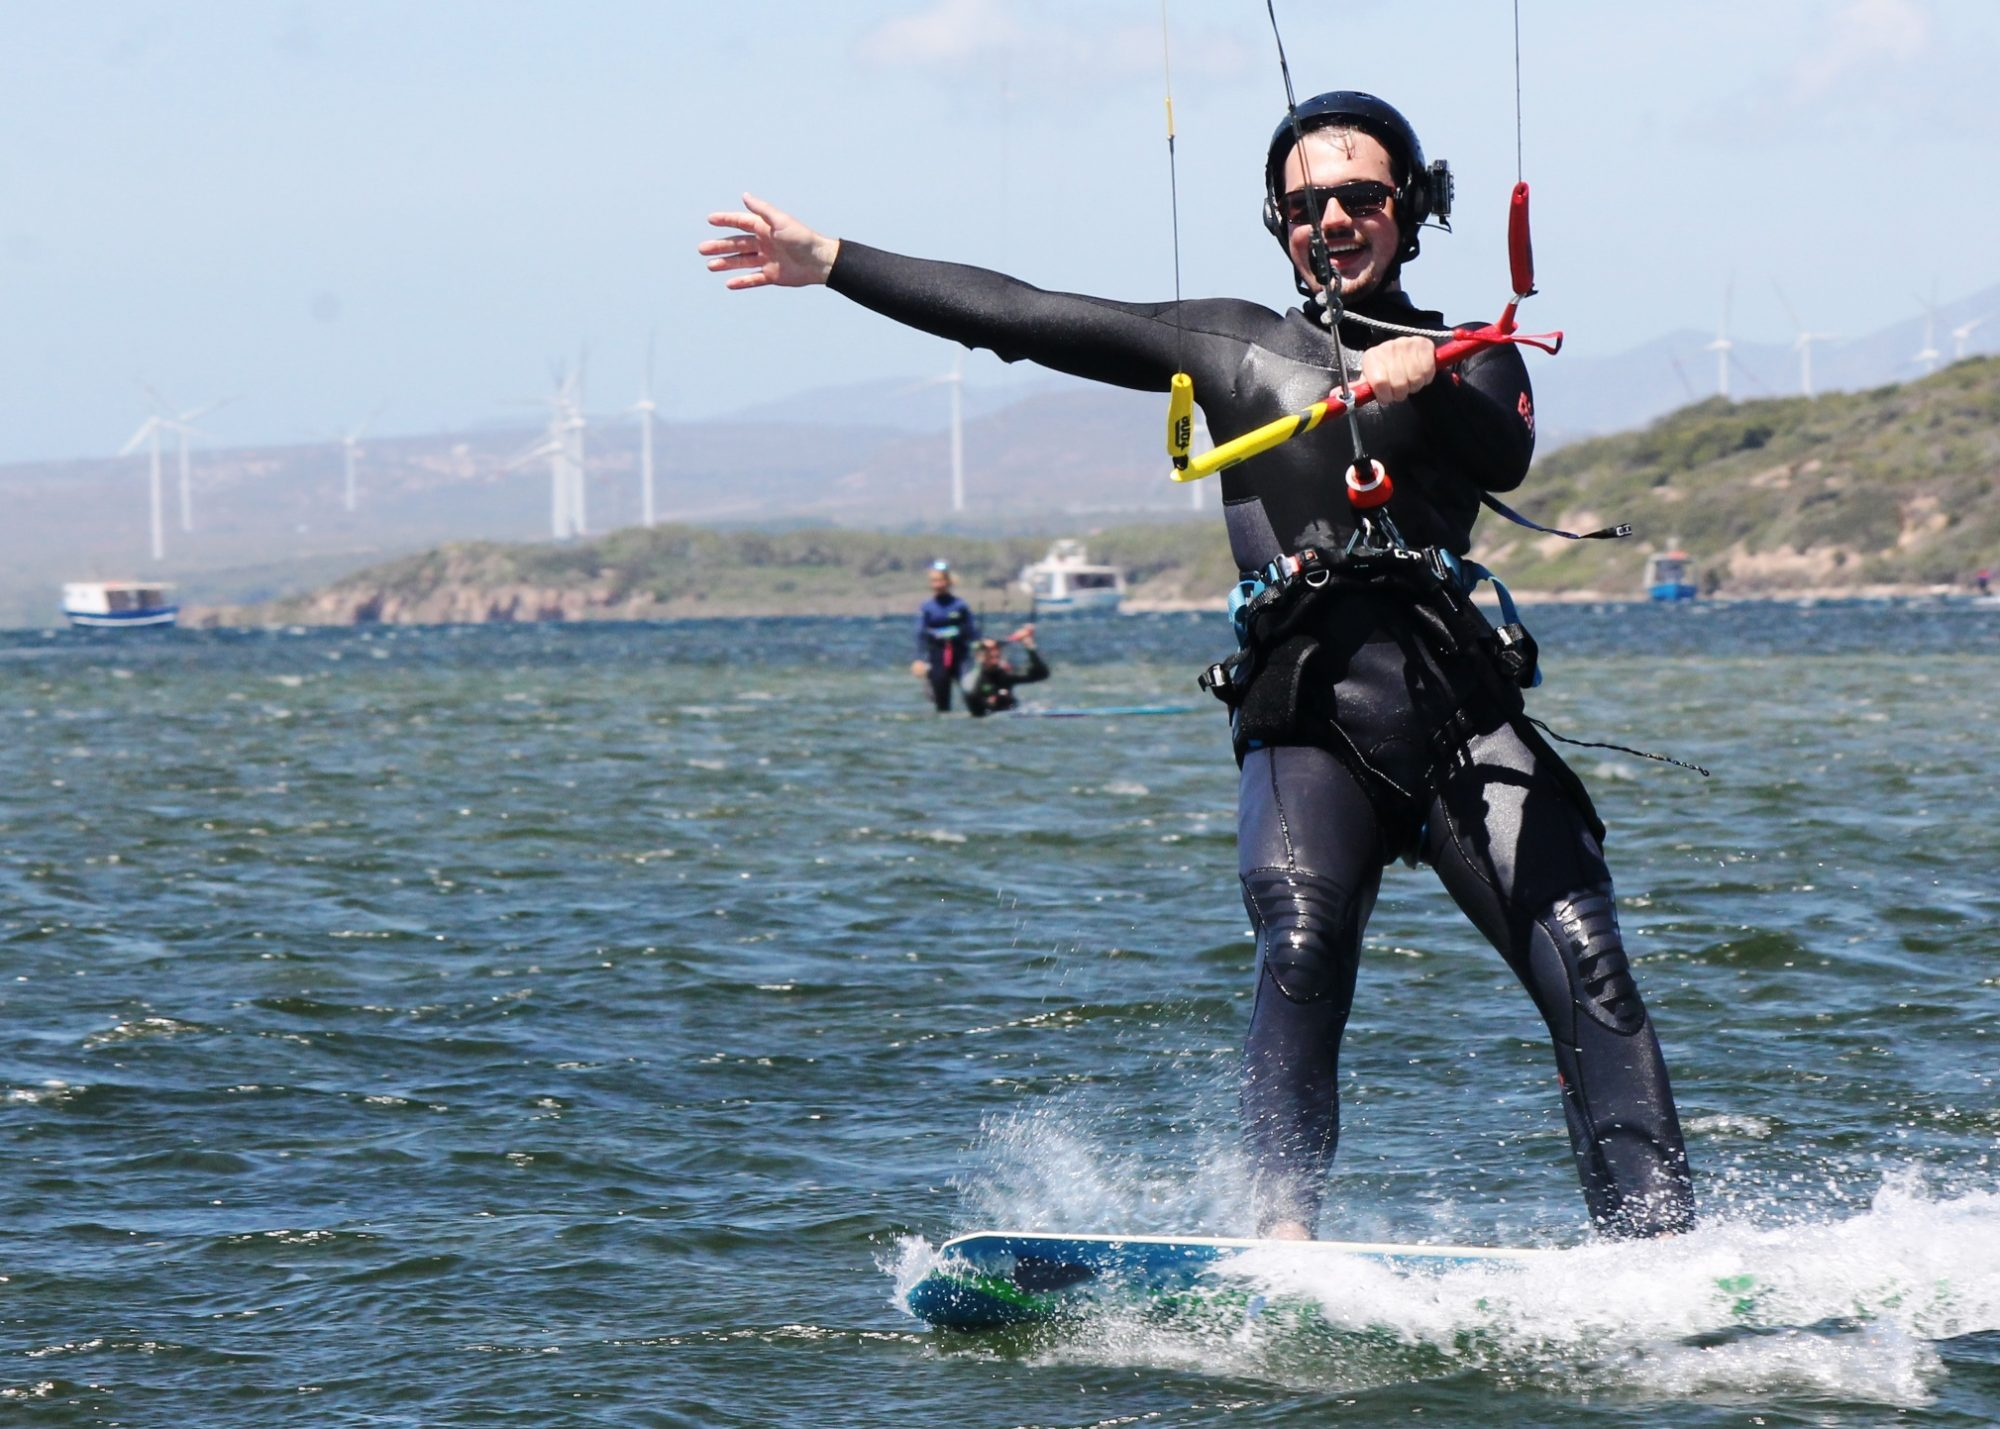 Kite Lessons with a Personal Trainer Instructor Guide in Sardinia